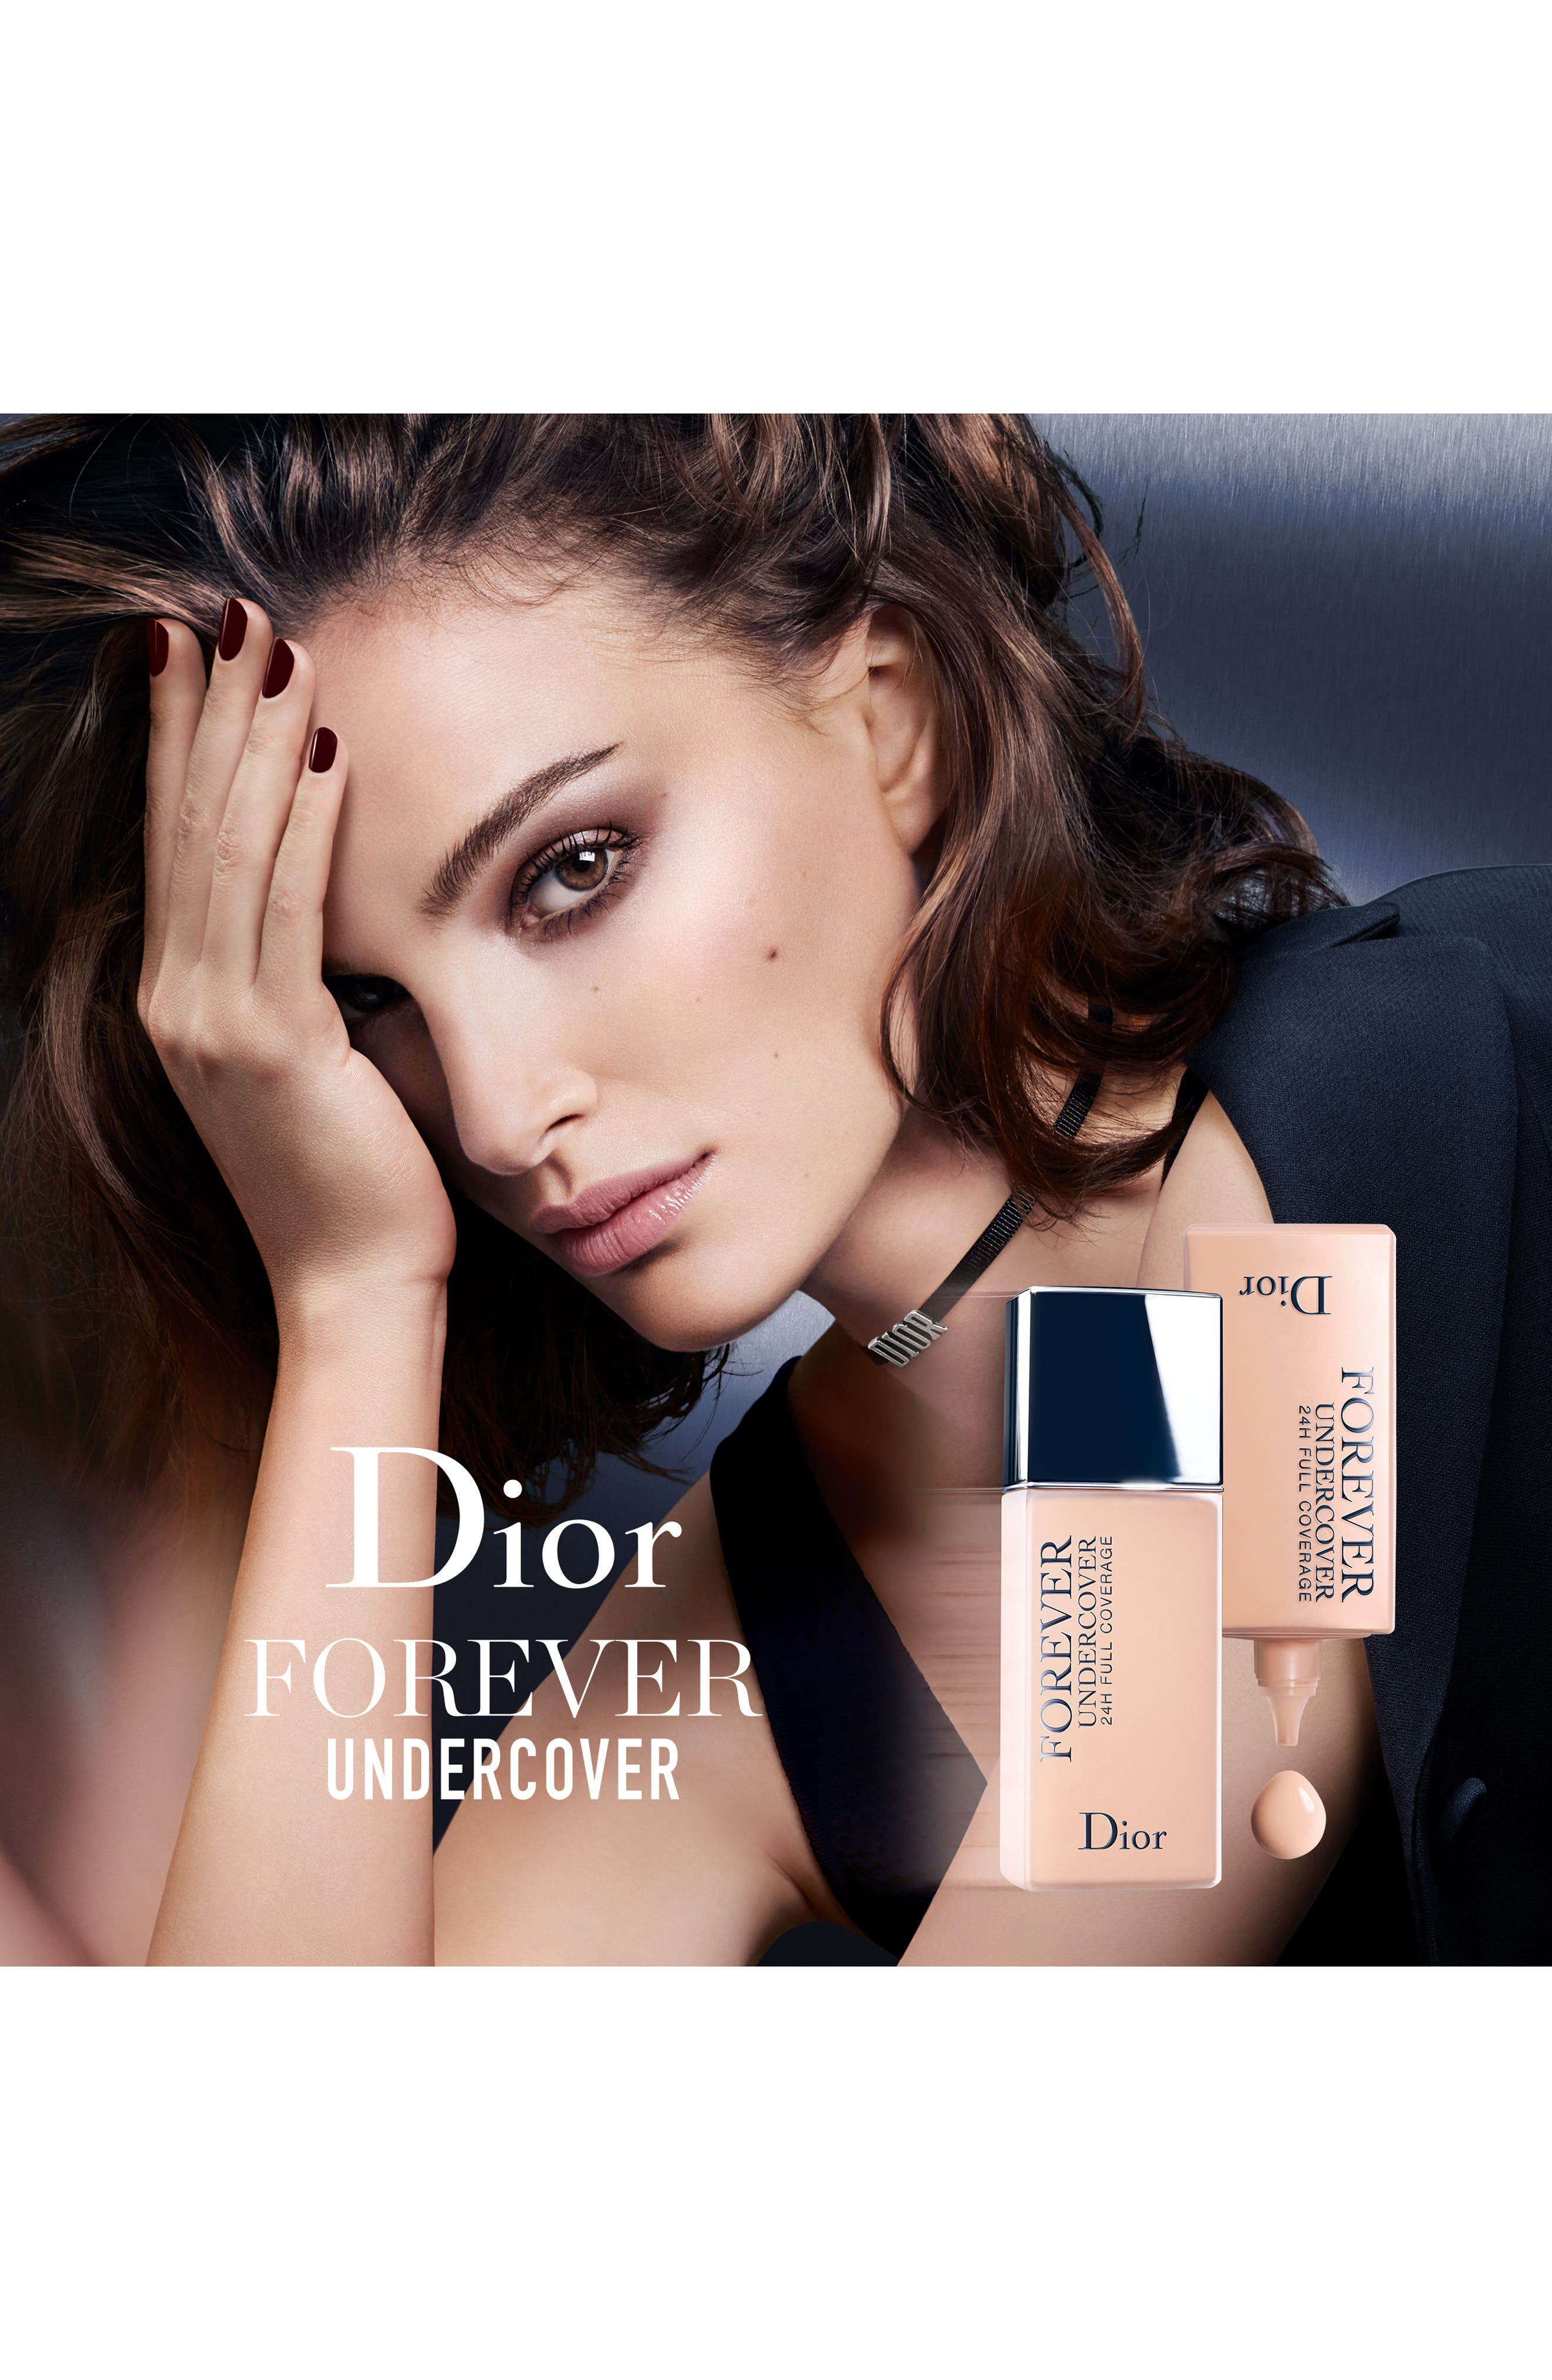 Diorskin Forever Undercover 24-Hour Full Coverage Water-Based Foundation,                             Alternate thumbnail 8, color,                             051 PRALINE